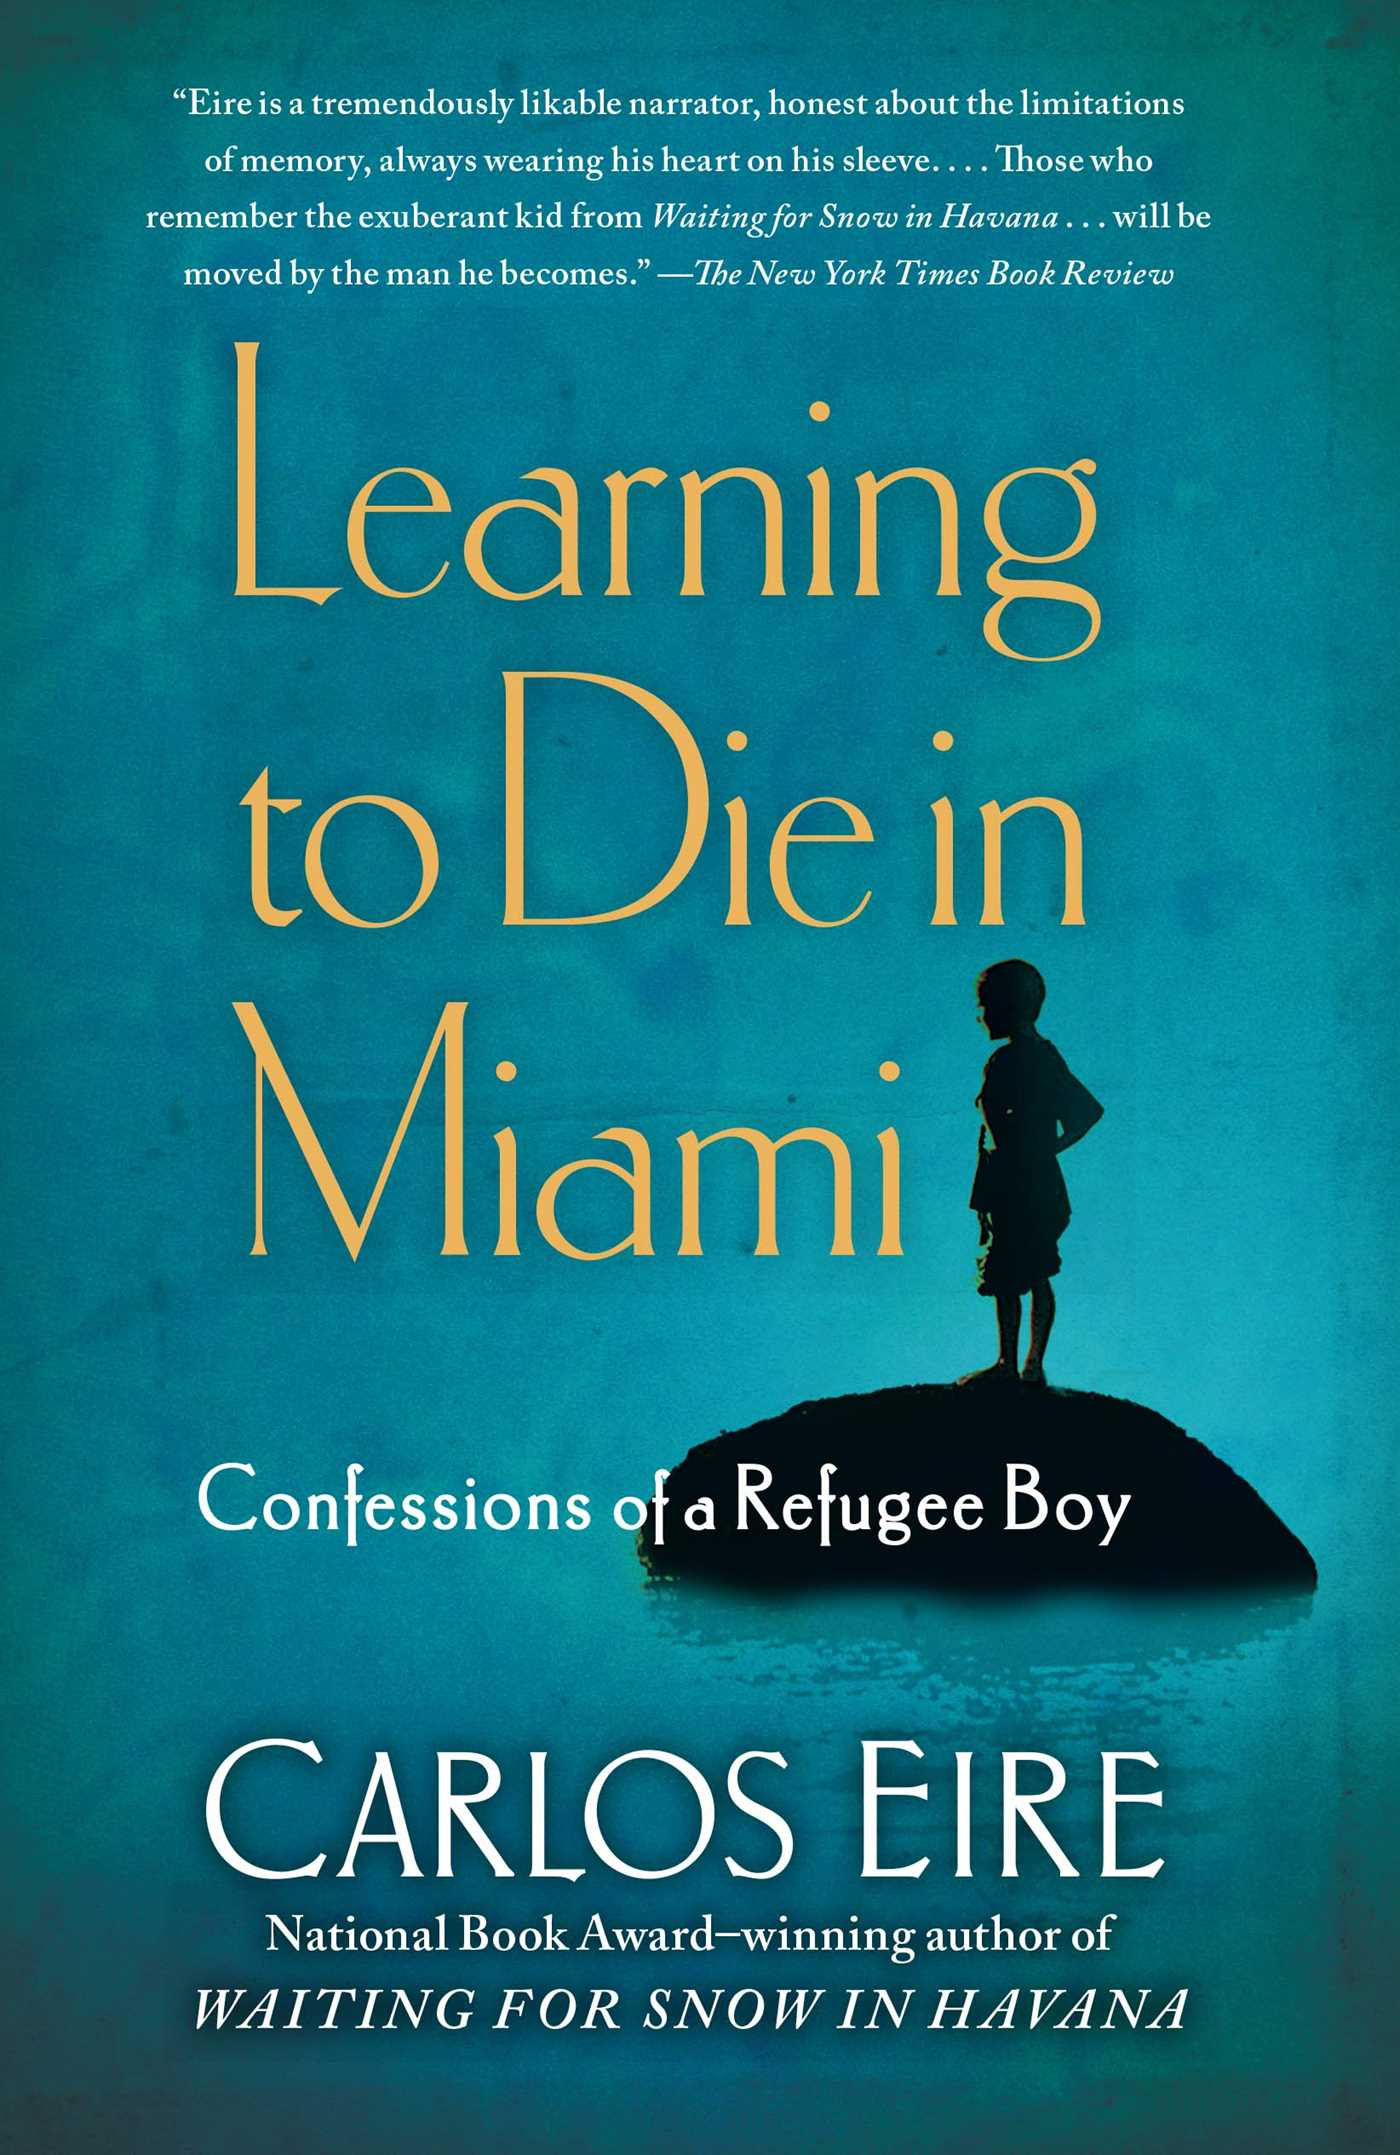 Learning to die in miami 9781439181911 hr